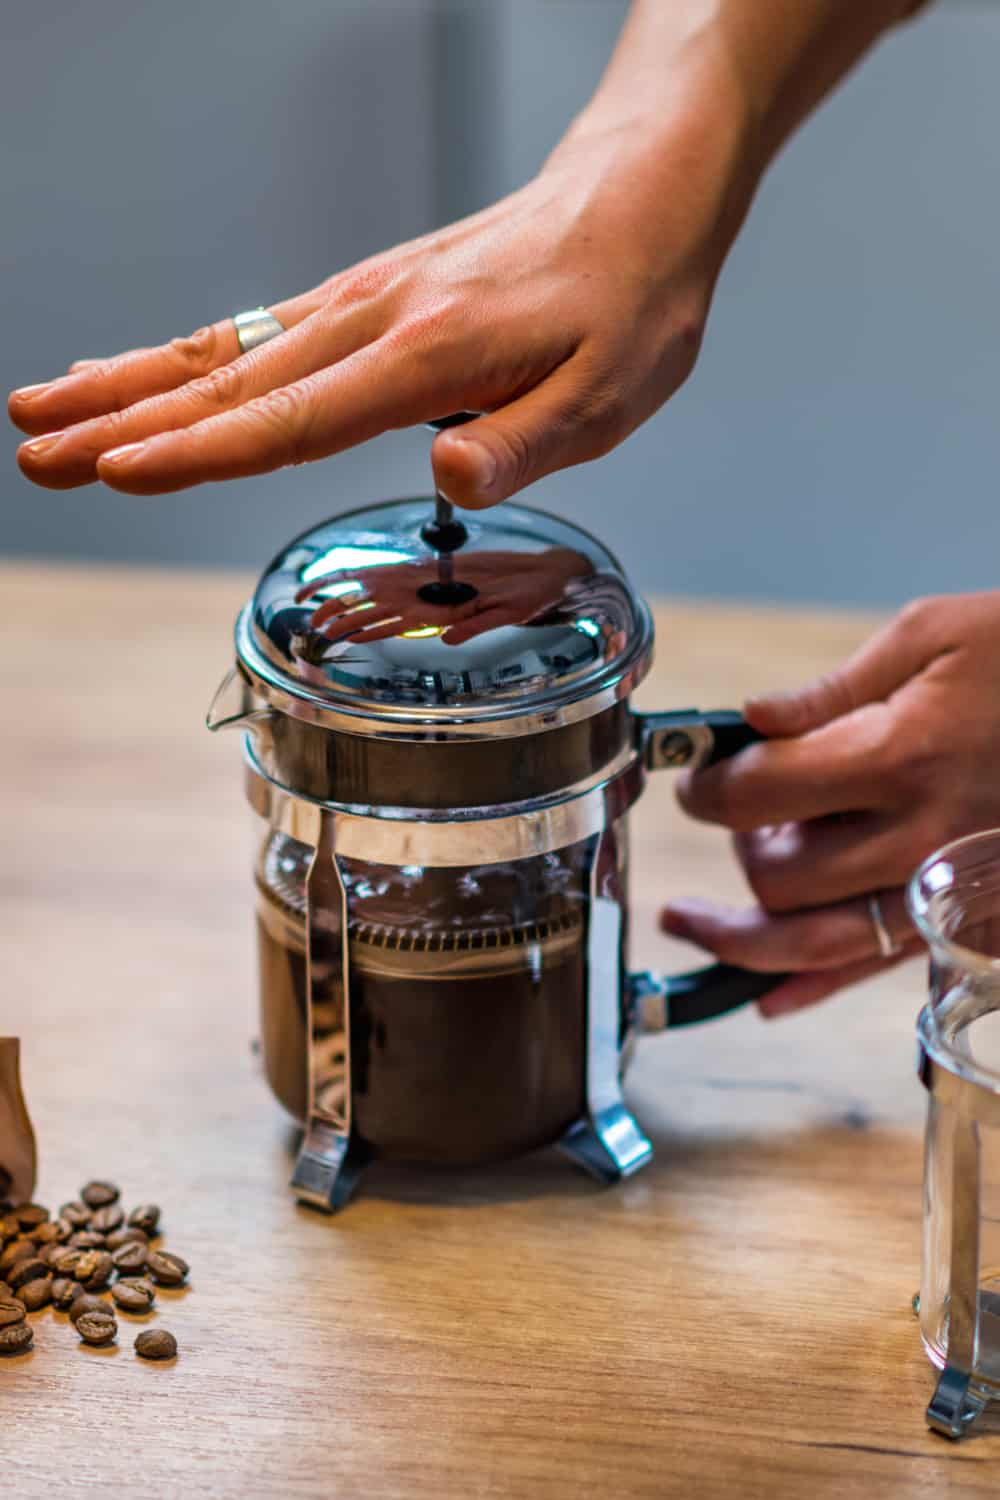 Tips for making French press coffee